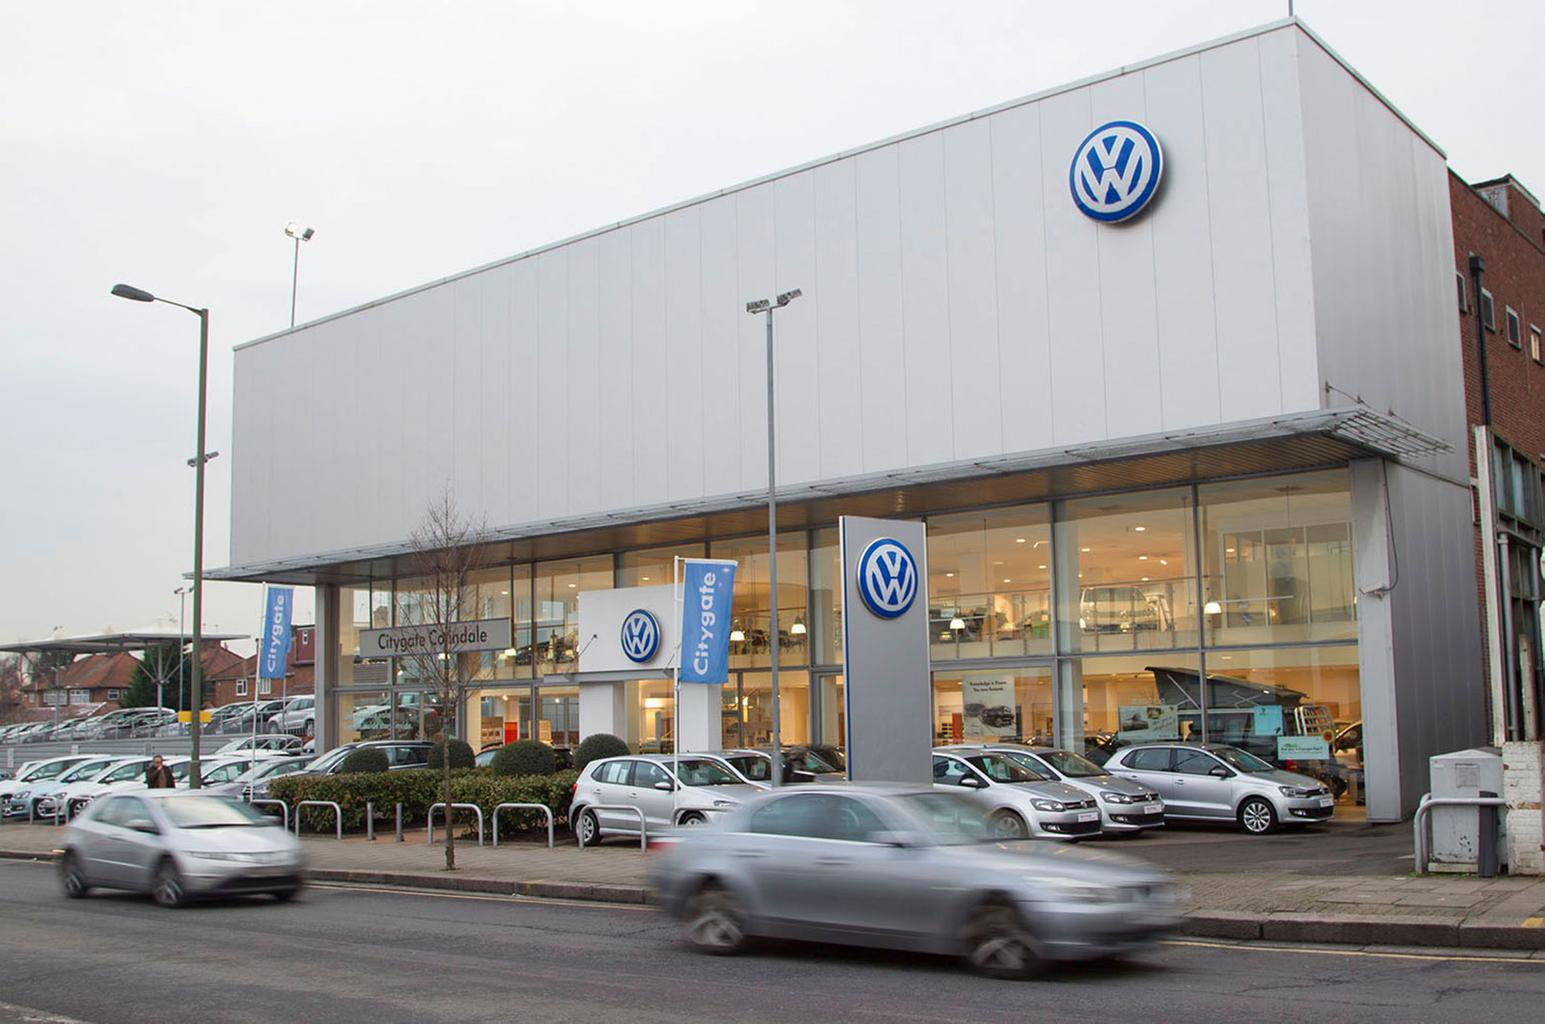 UK dieselgate VW owners launch legal action for compensation